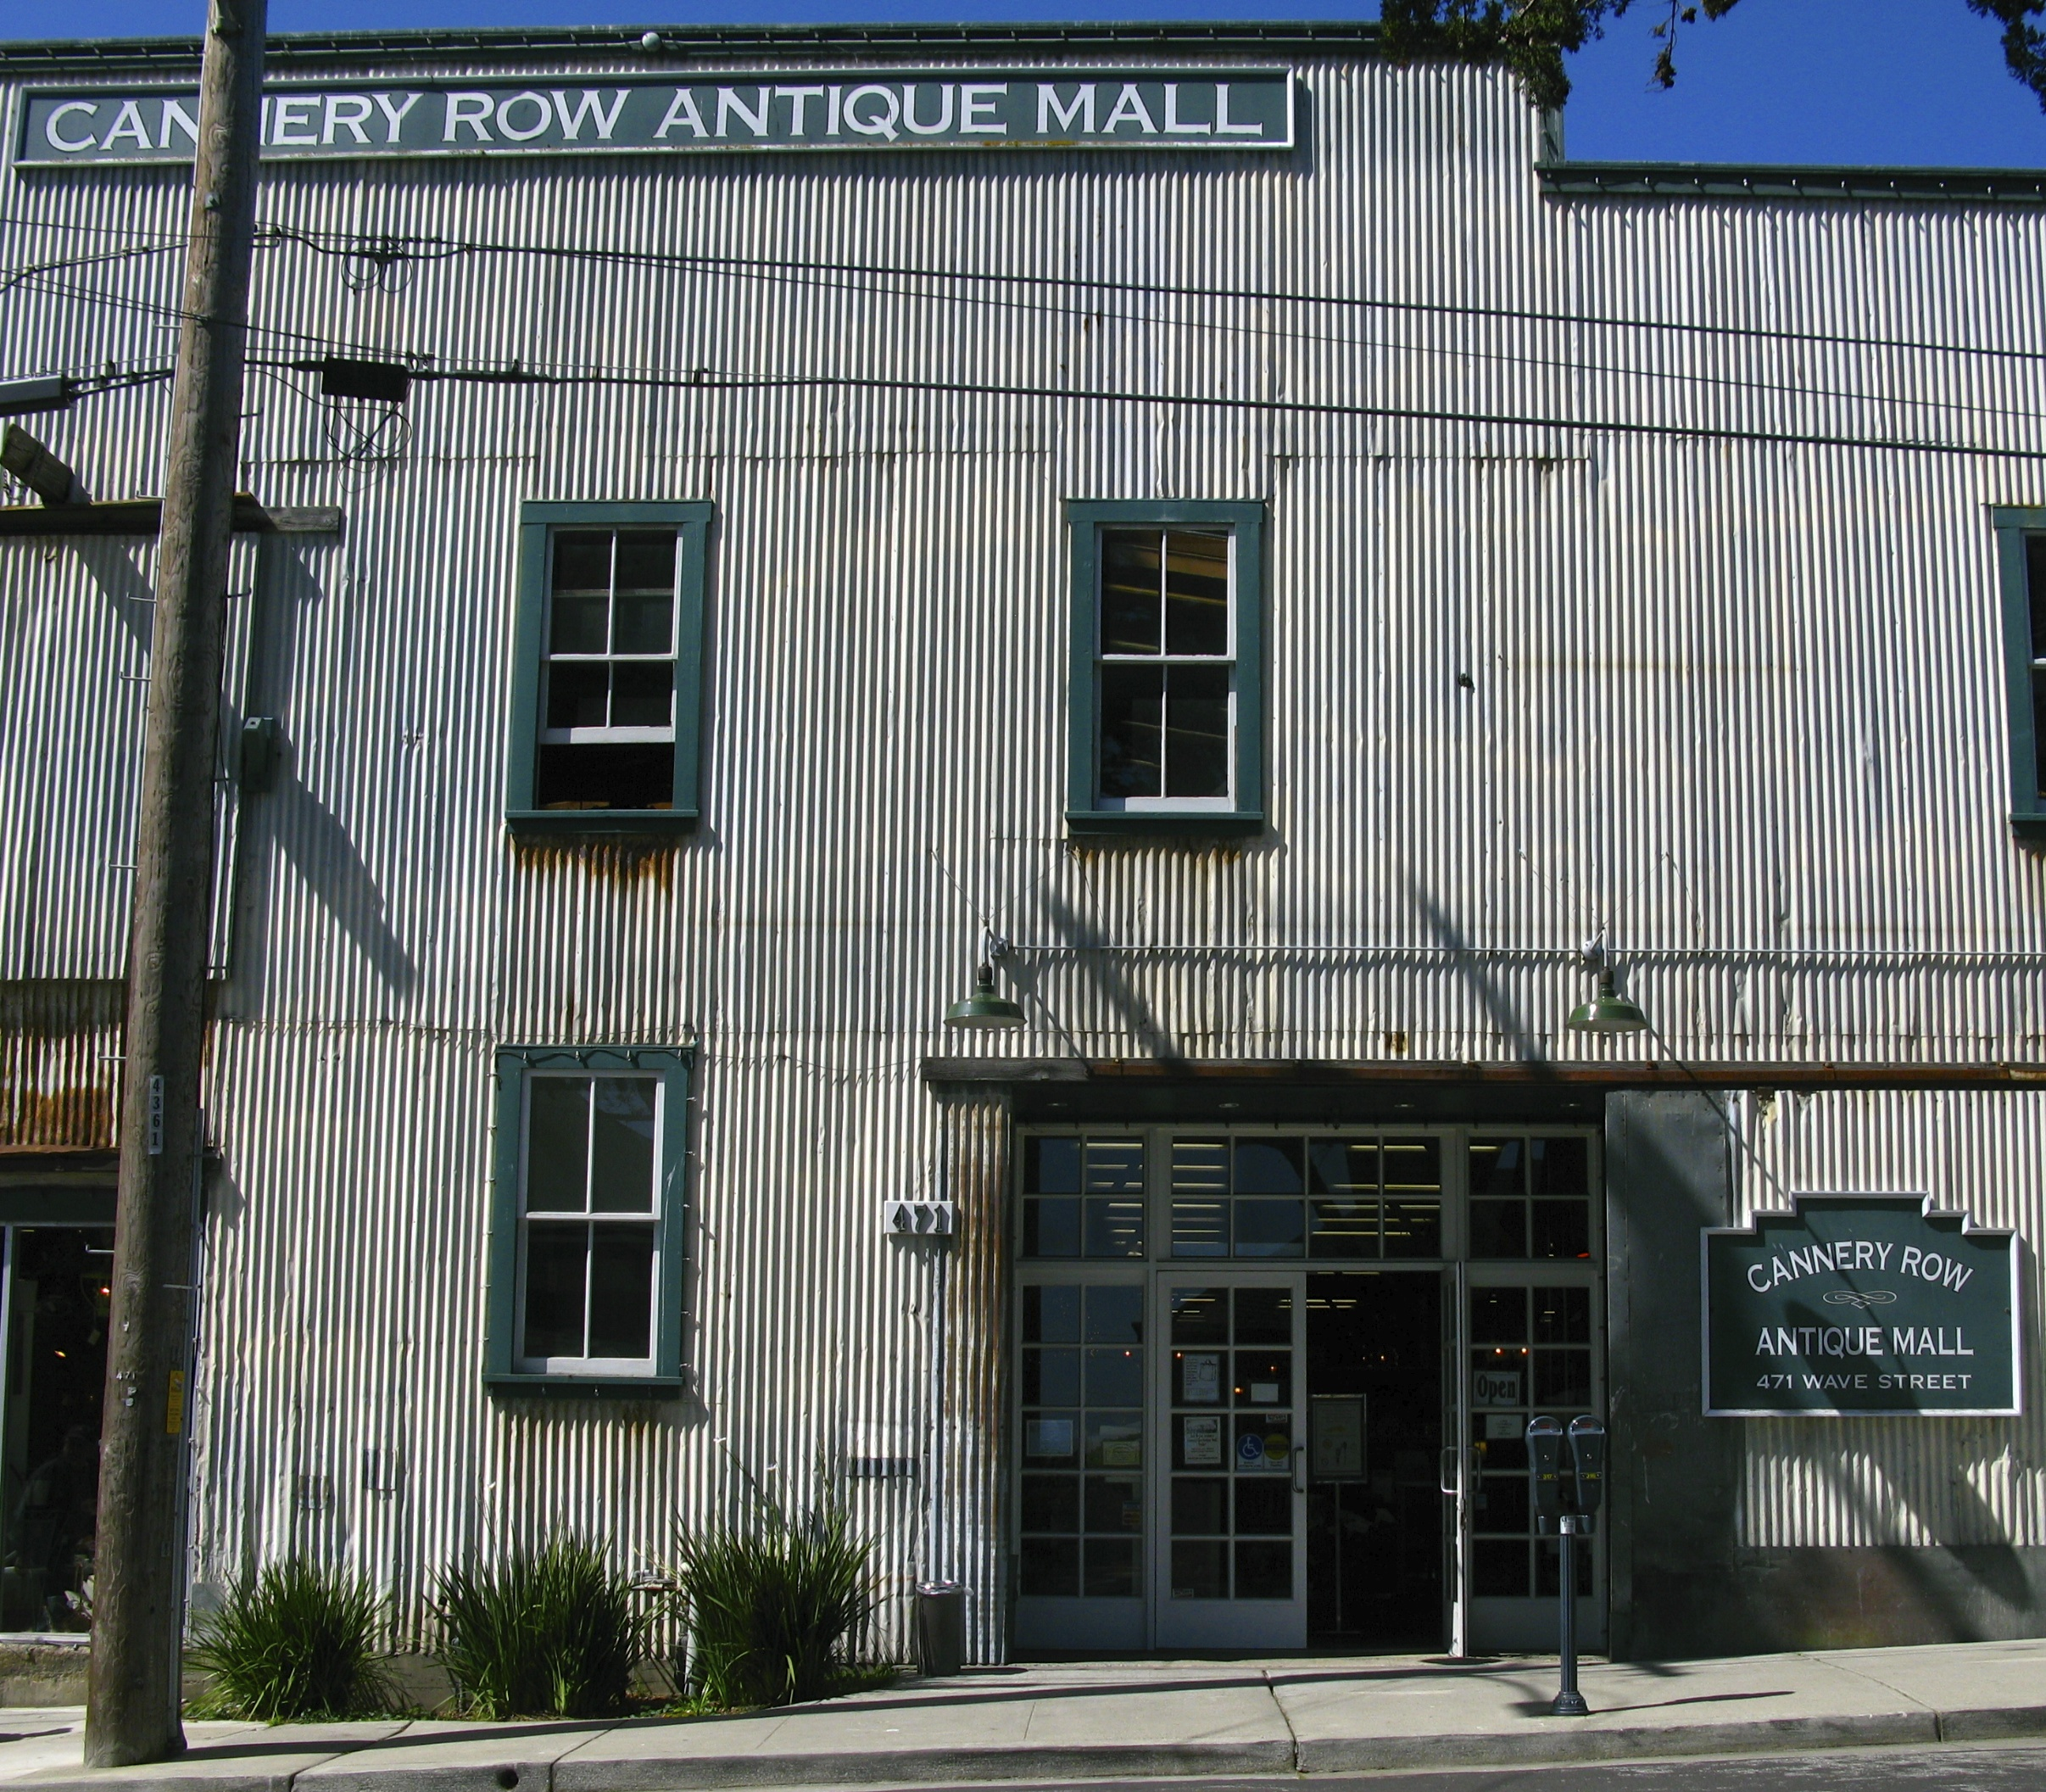 cannery row antique mall Cannery Row Antique Mall | Once upon a time..Tales from Carmel by  cannery row antique mall